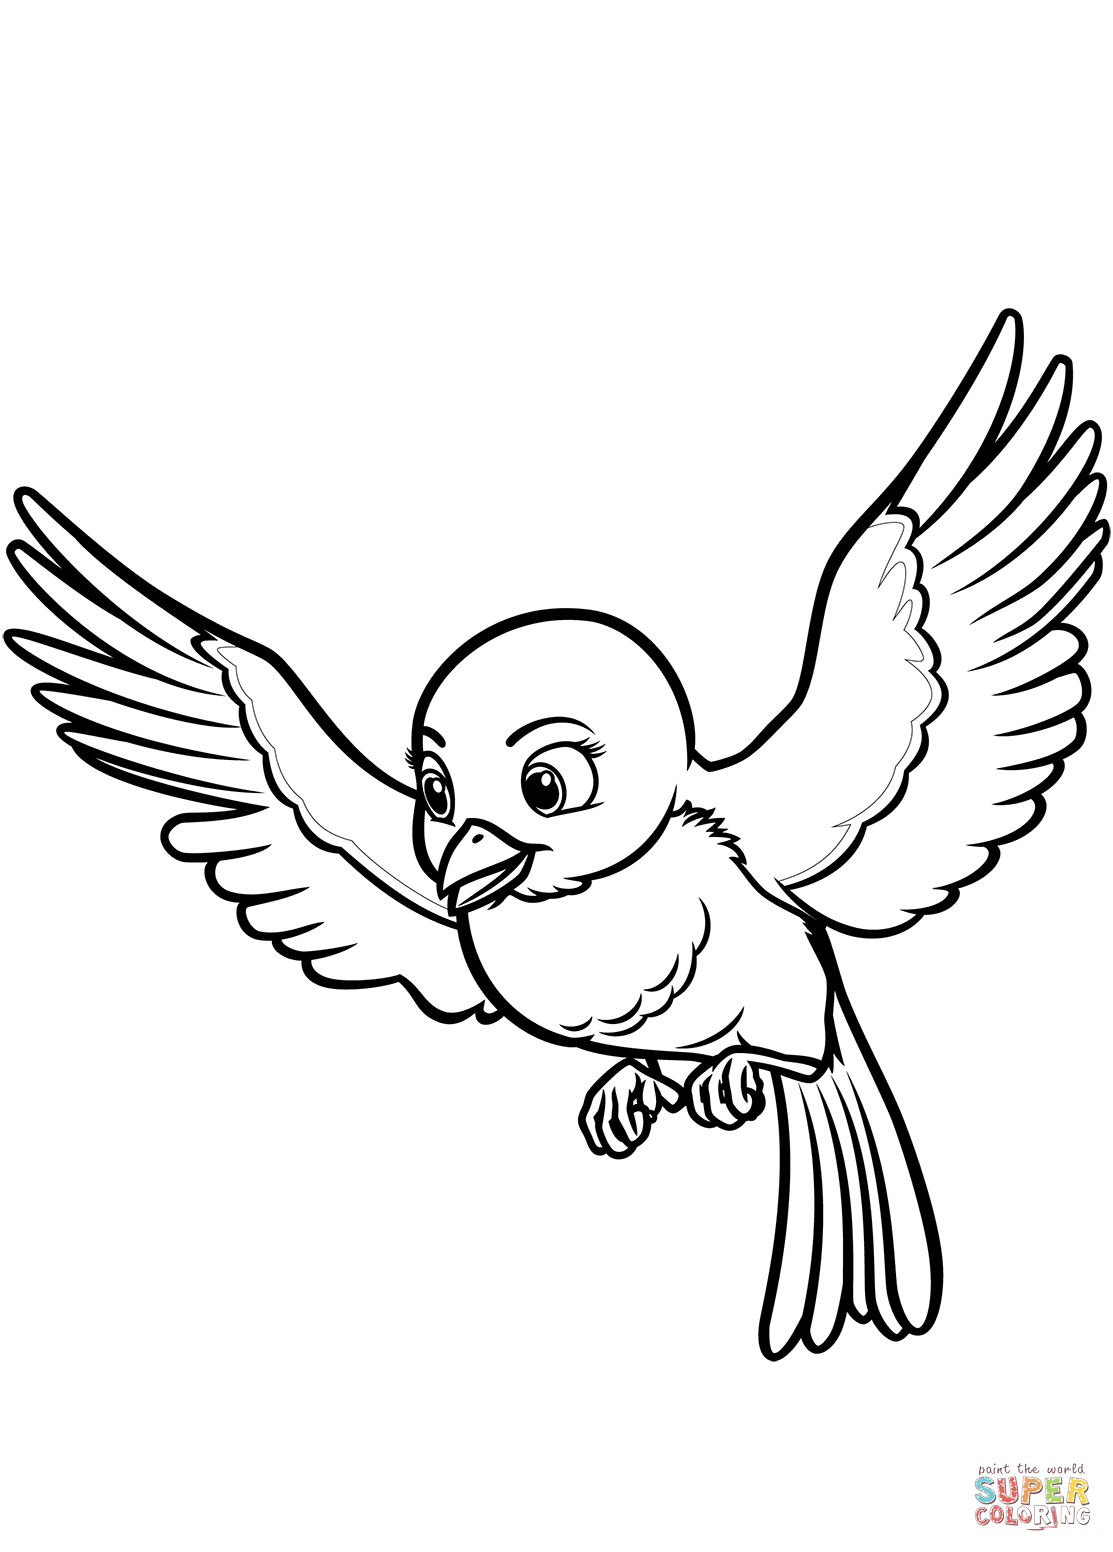 Mia the Bluebird from Sofia the First coloring page | Free ...